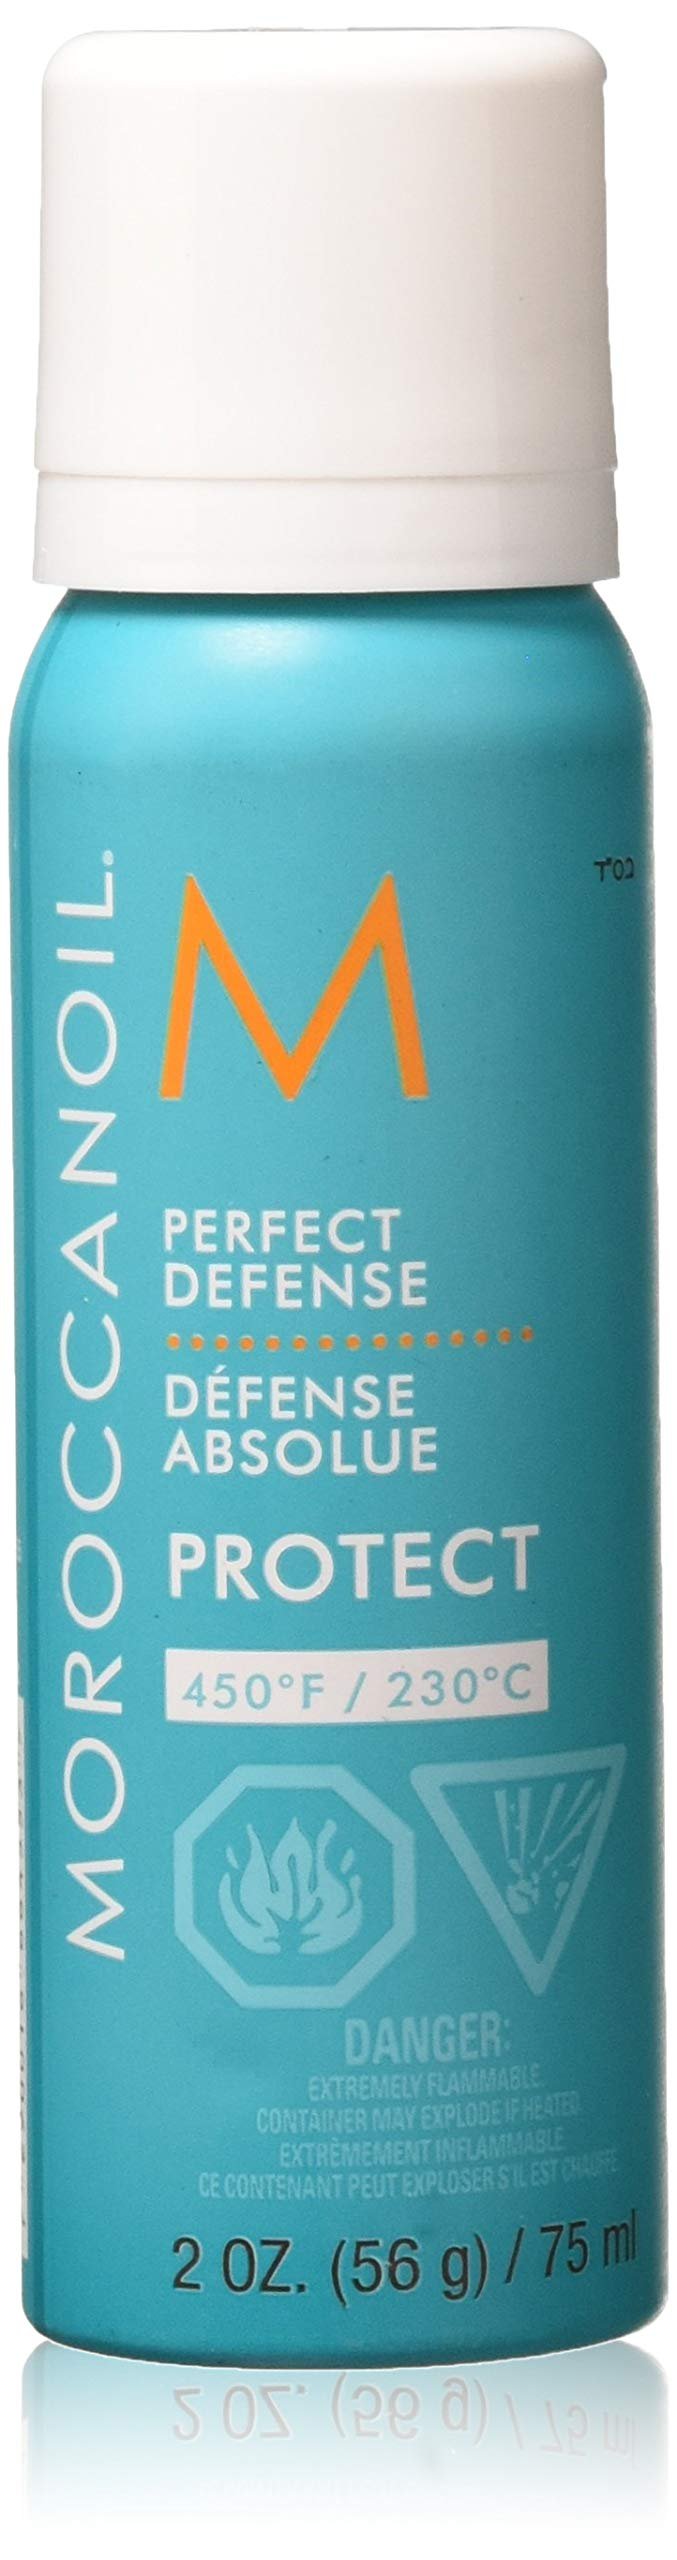 Moroccanoil Perfect Defense For All Hair Types, 2 Ounce